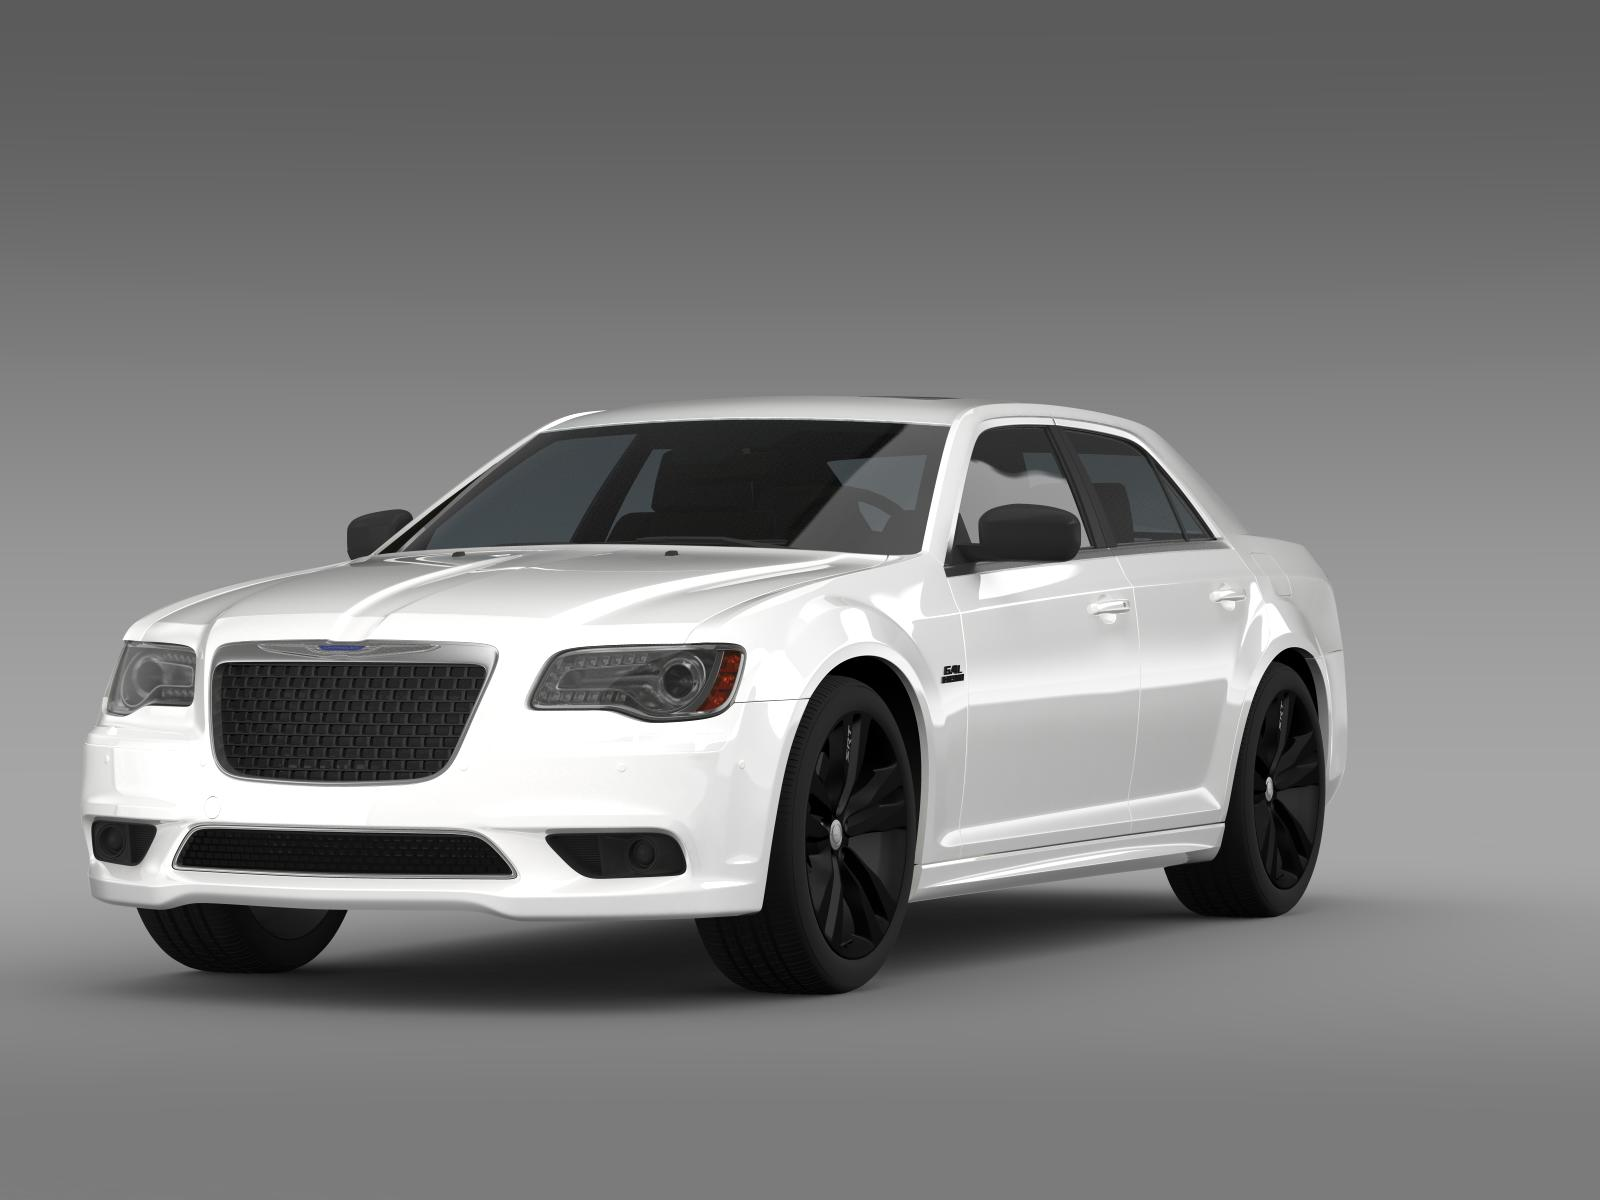 chrysler 300 srt8 satin vapor lx2 2014 3d model 3ds max fbx c4d lwo ma mb hrc xsi obj 207996